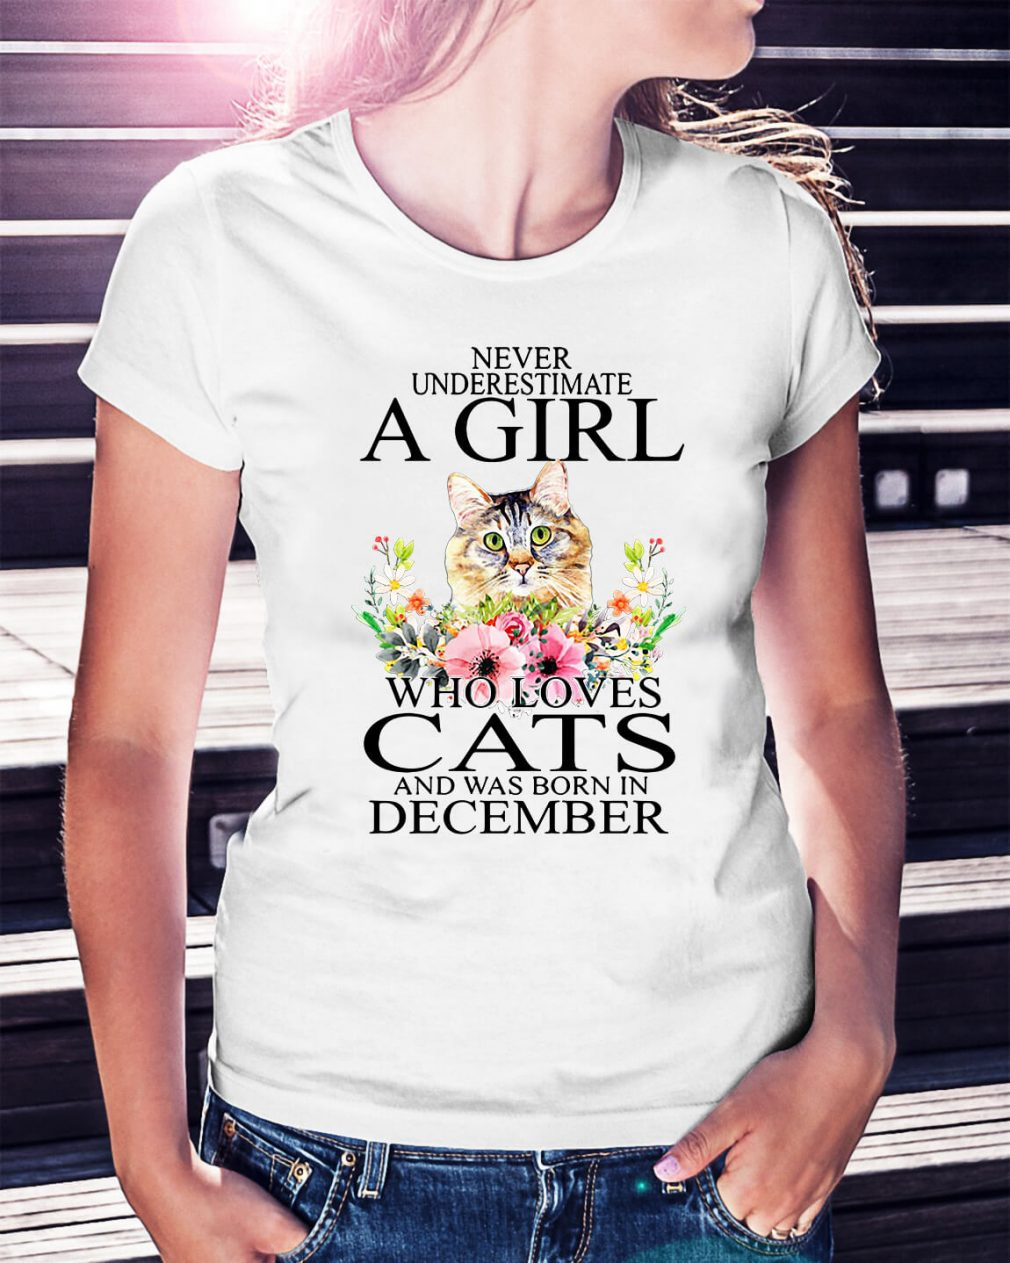 Never underestimate a girl who loves cats and was born in December shirt